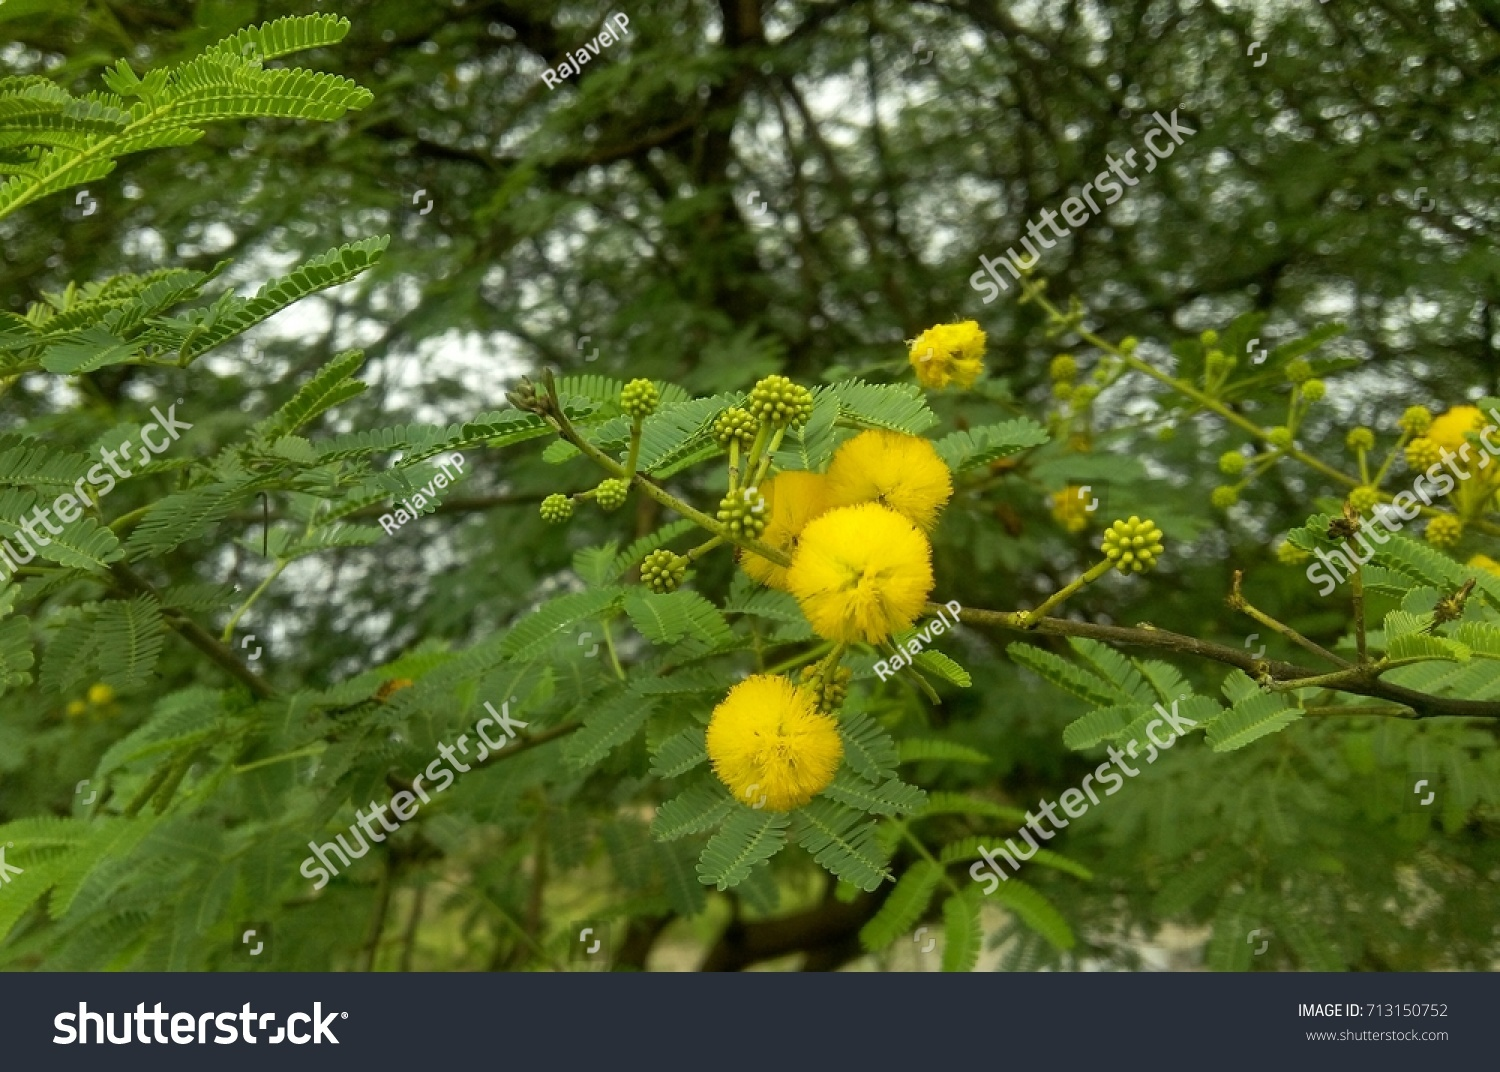 Prosopis Juliflora Tree Flower Invasive Species Stock Photo Edit